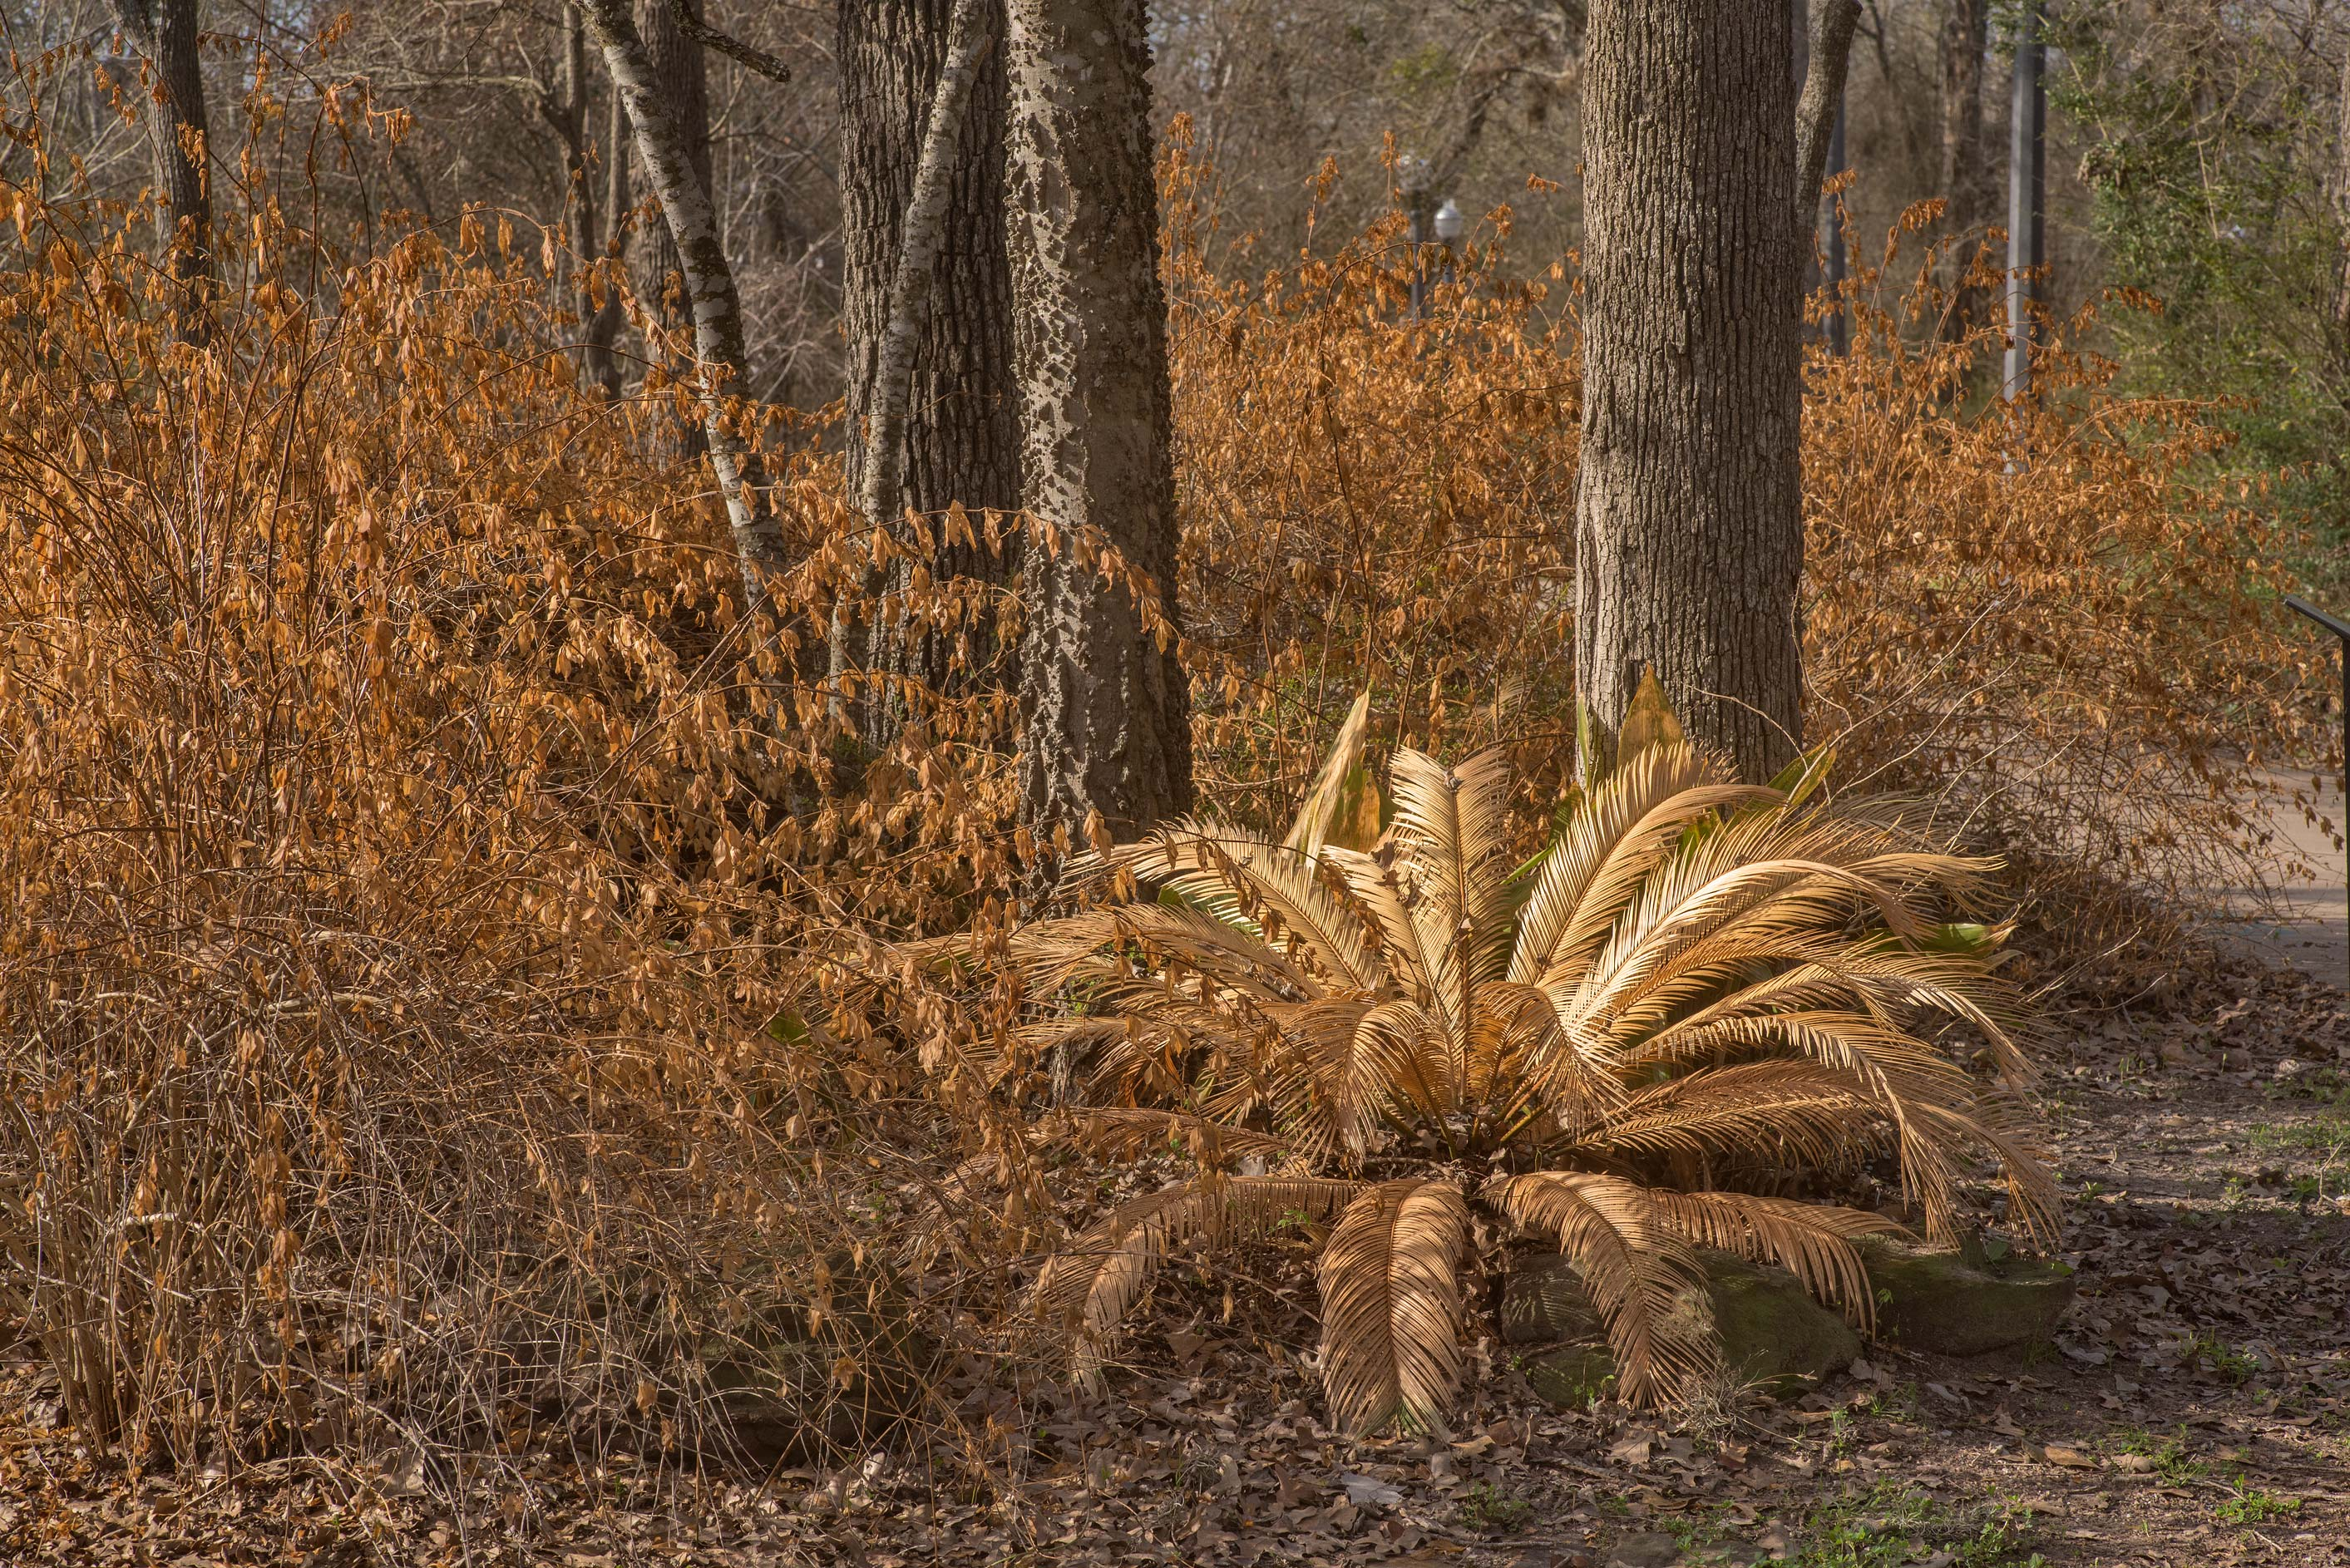 Dry Sago palm and yellow jasmine at a trail...Pen Creek Park. College Station, Texas